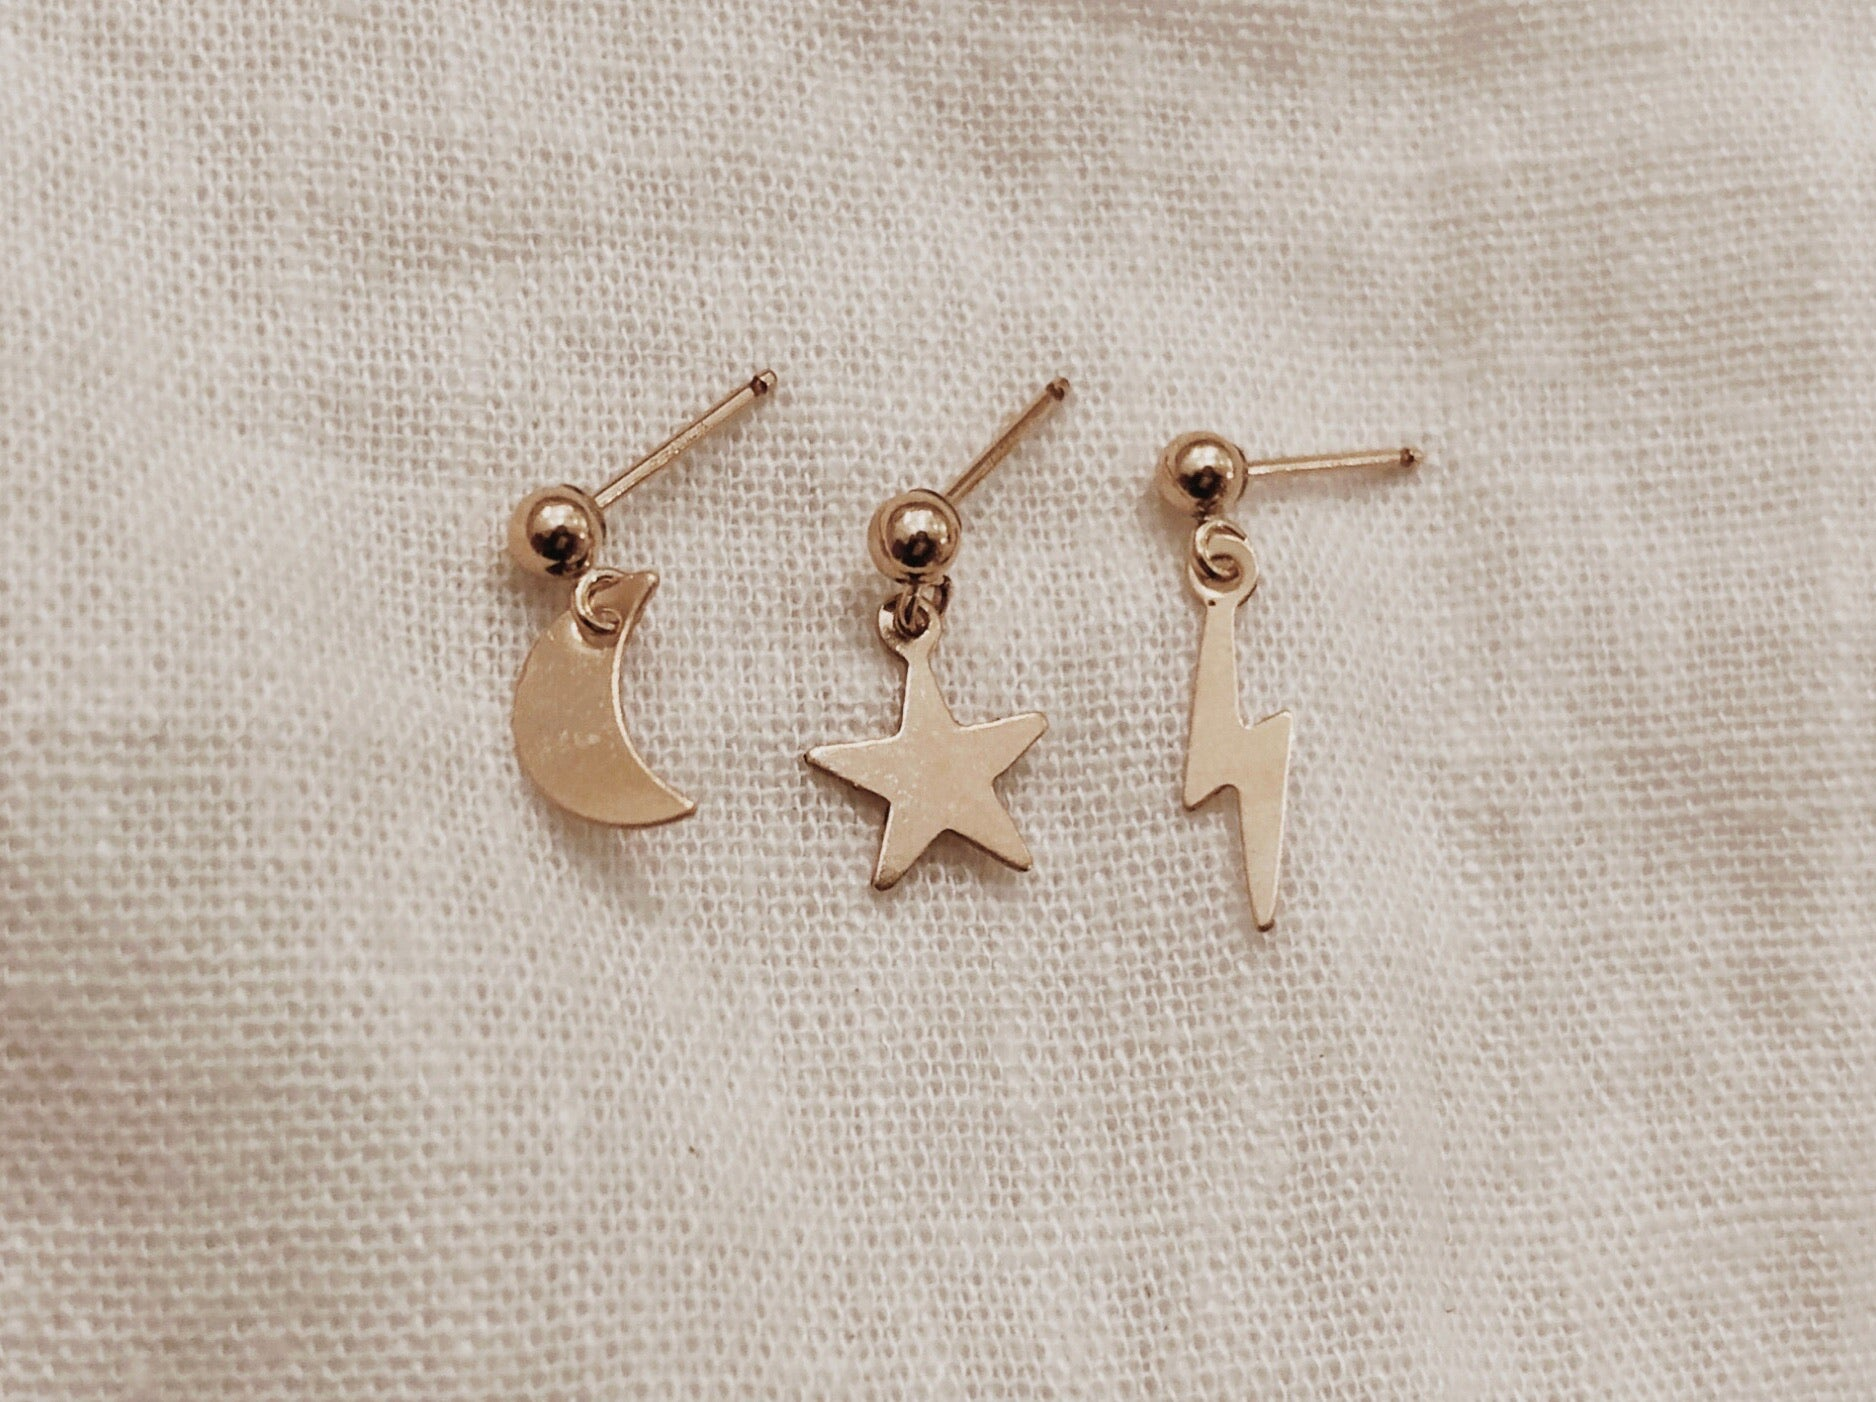 The Astrology Studs